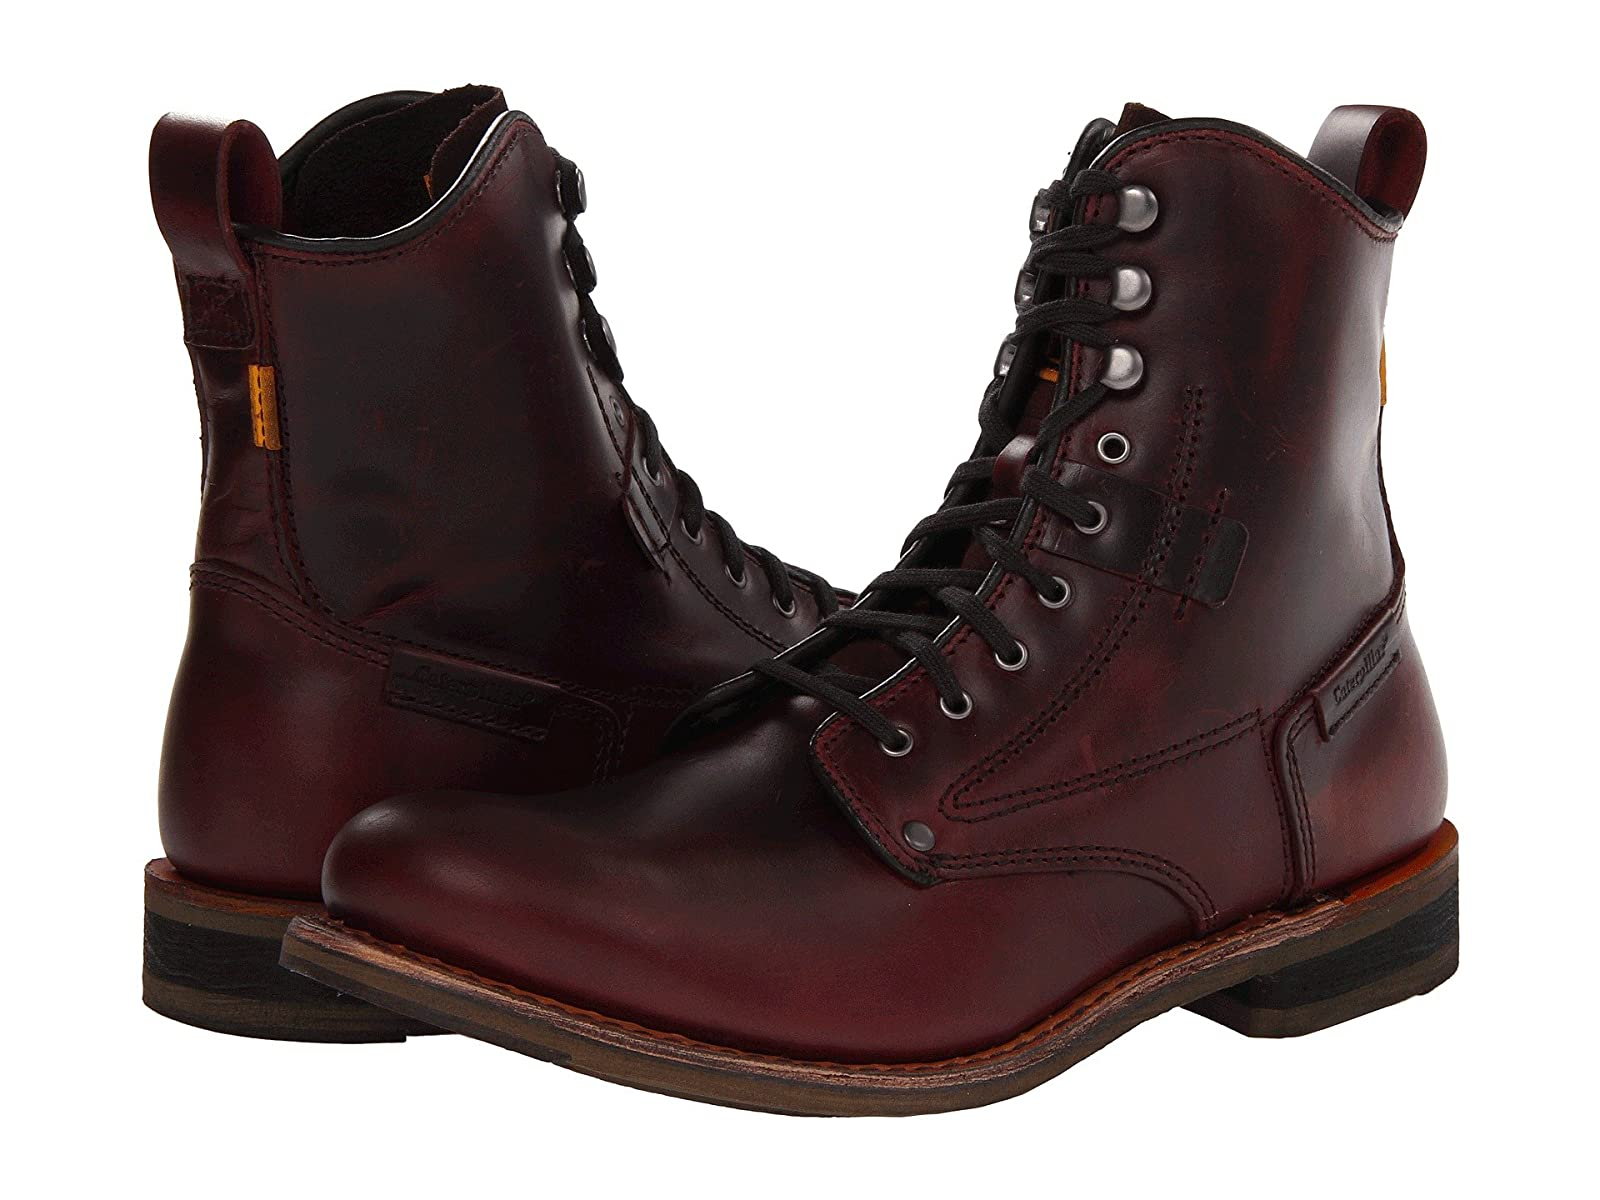 Caterpillar Casual OrsonCheap and distinctive eye-catching shoes